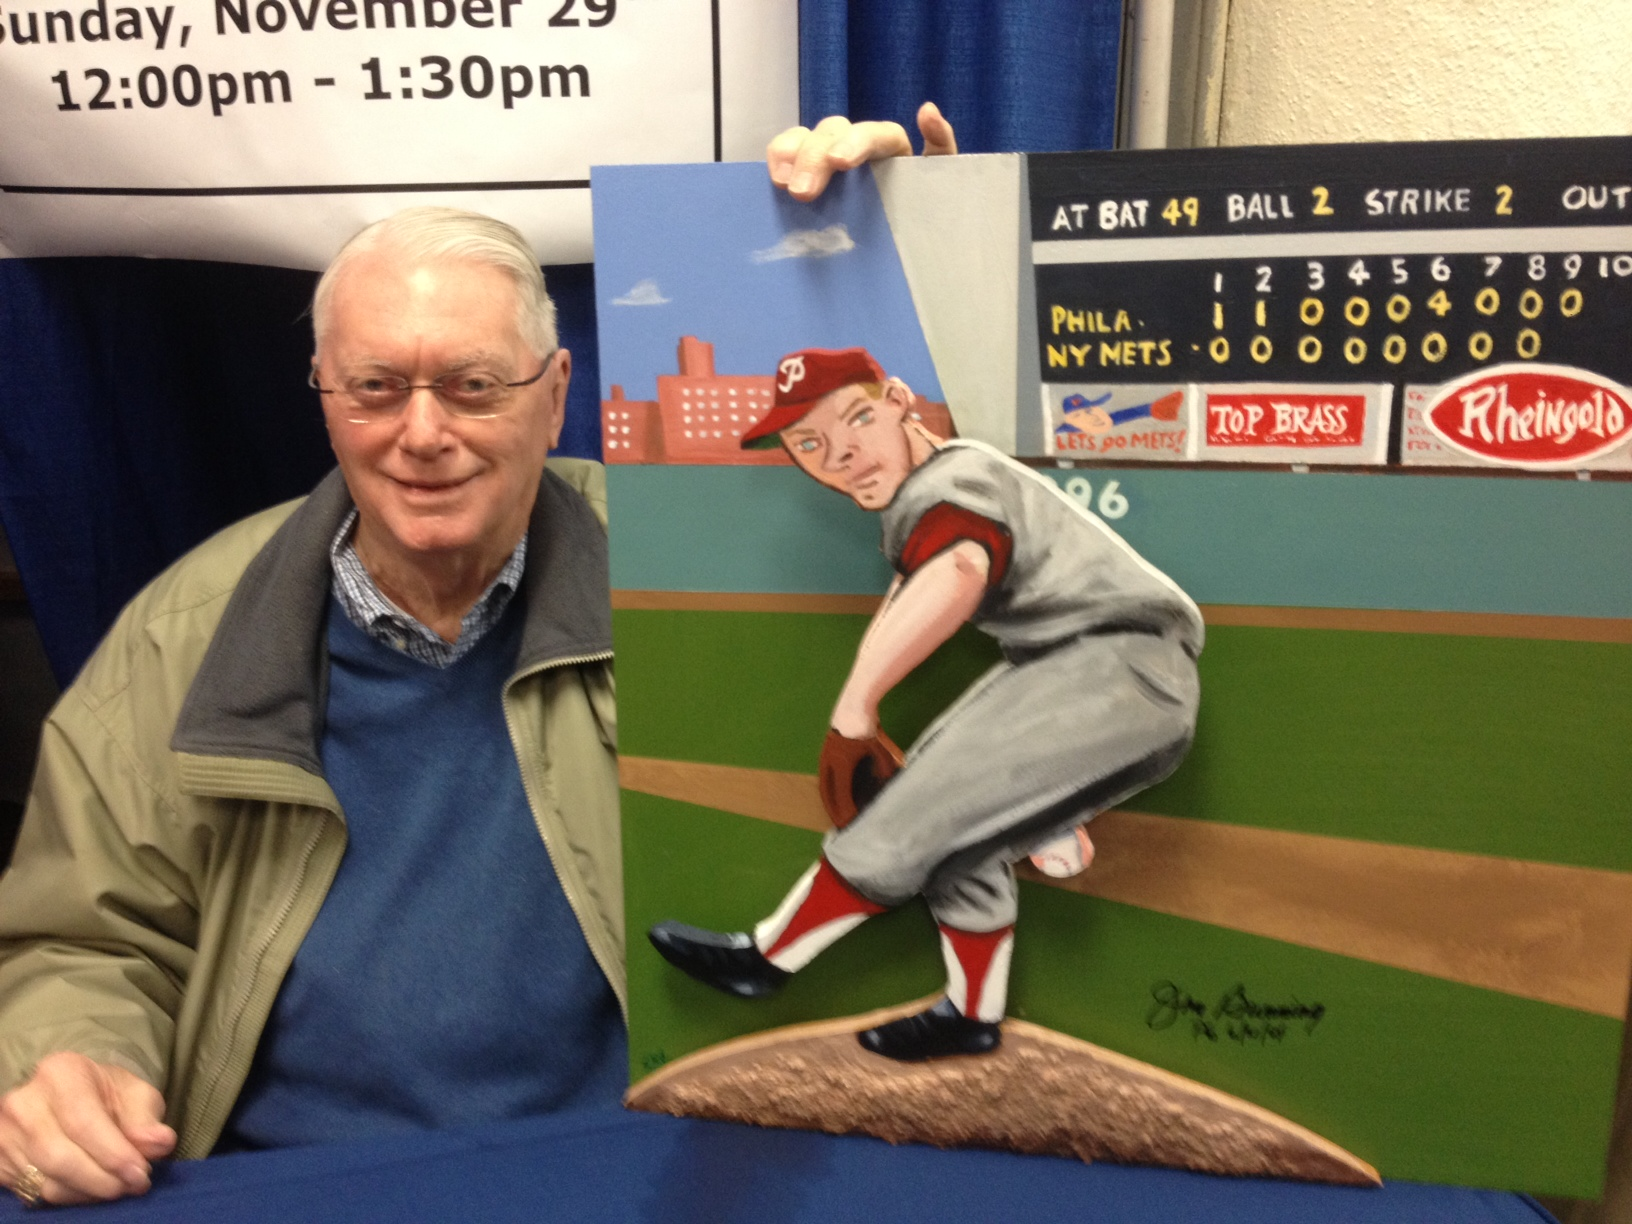 Jim Bunning with painting